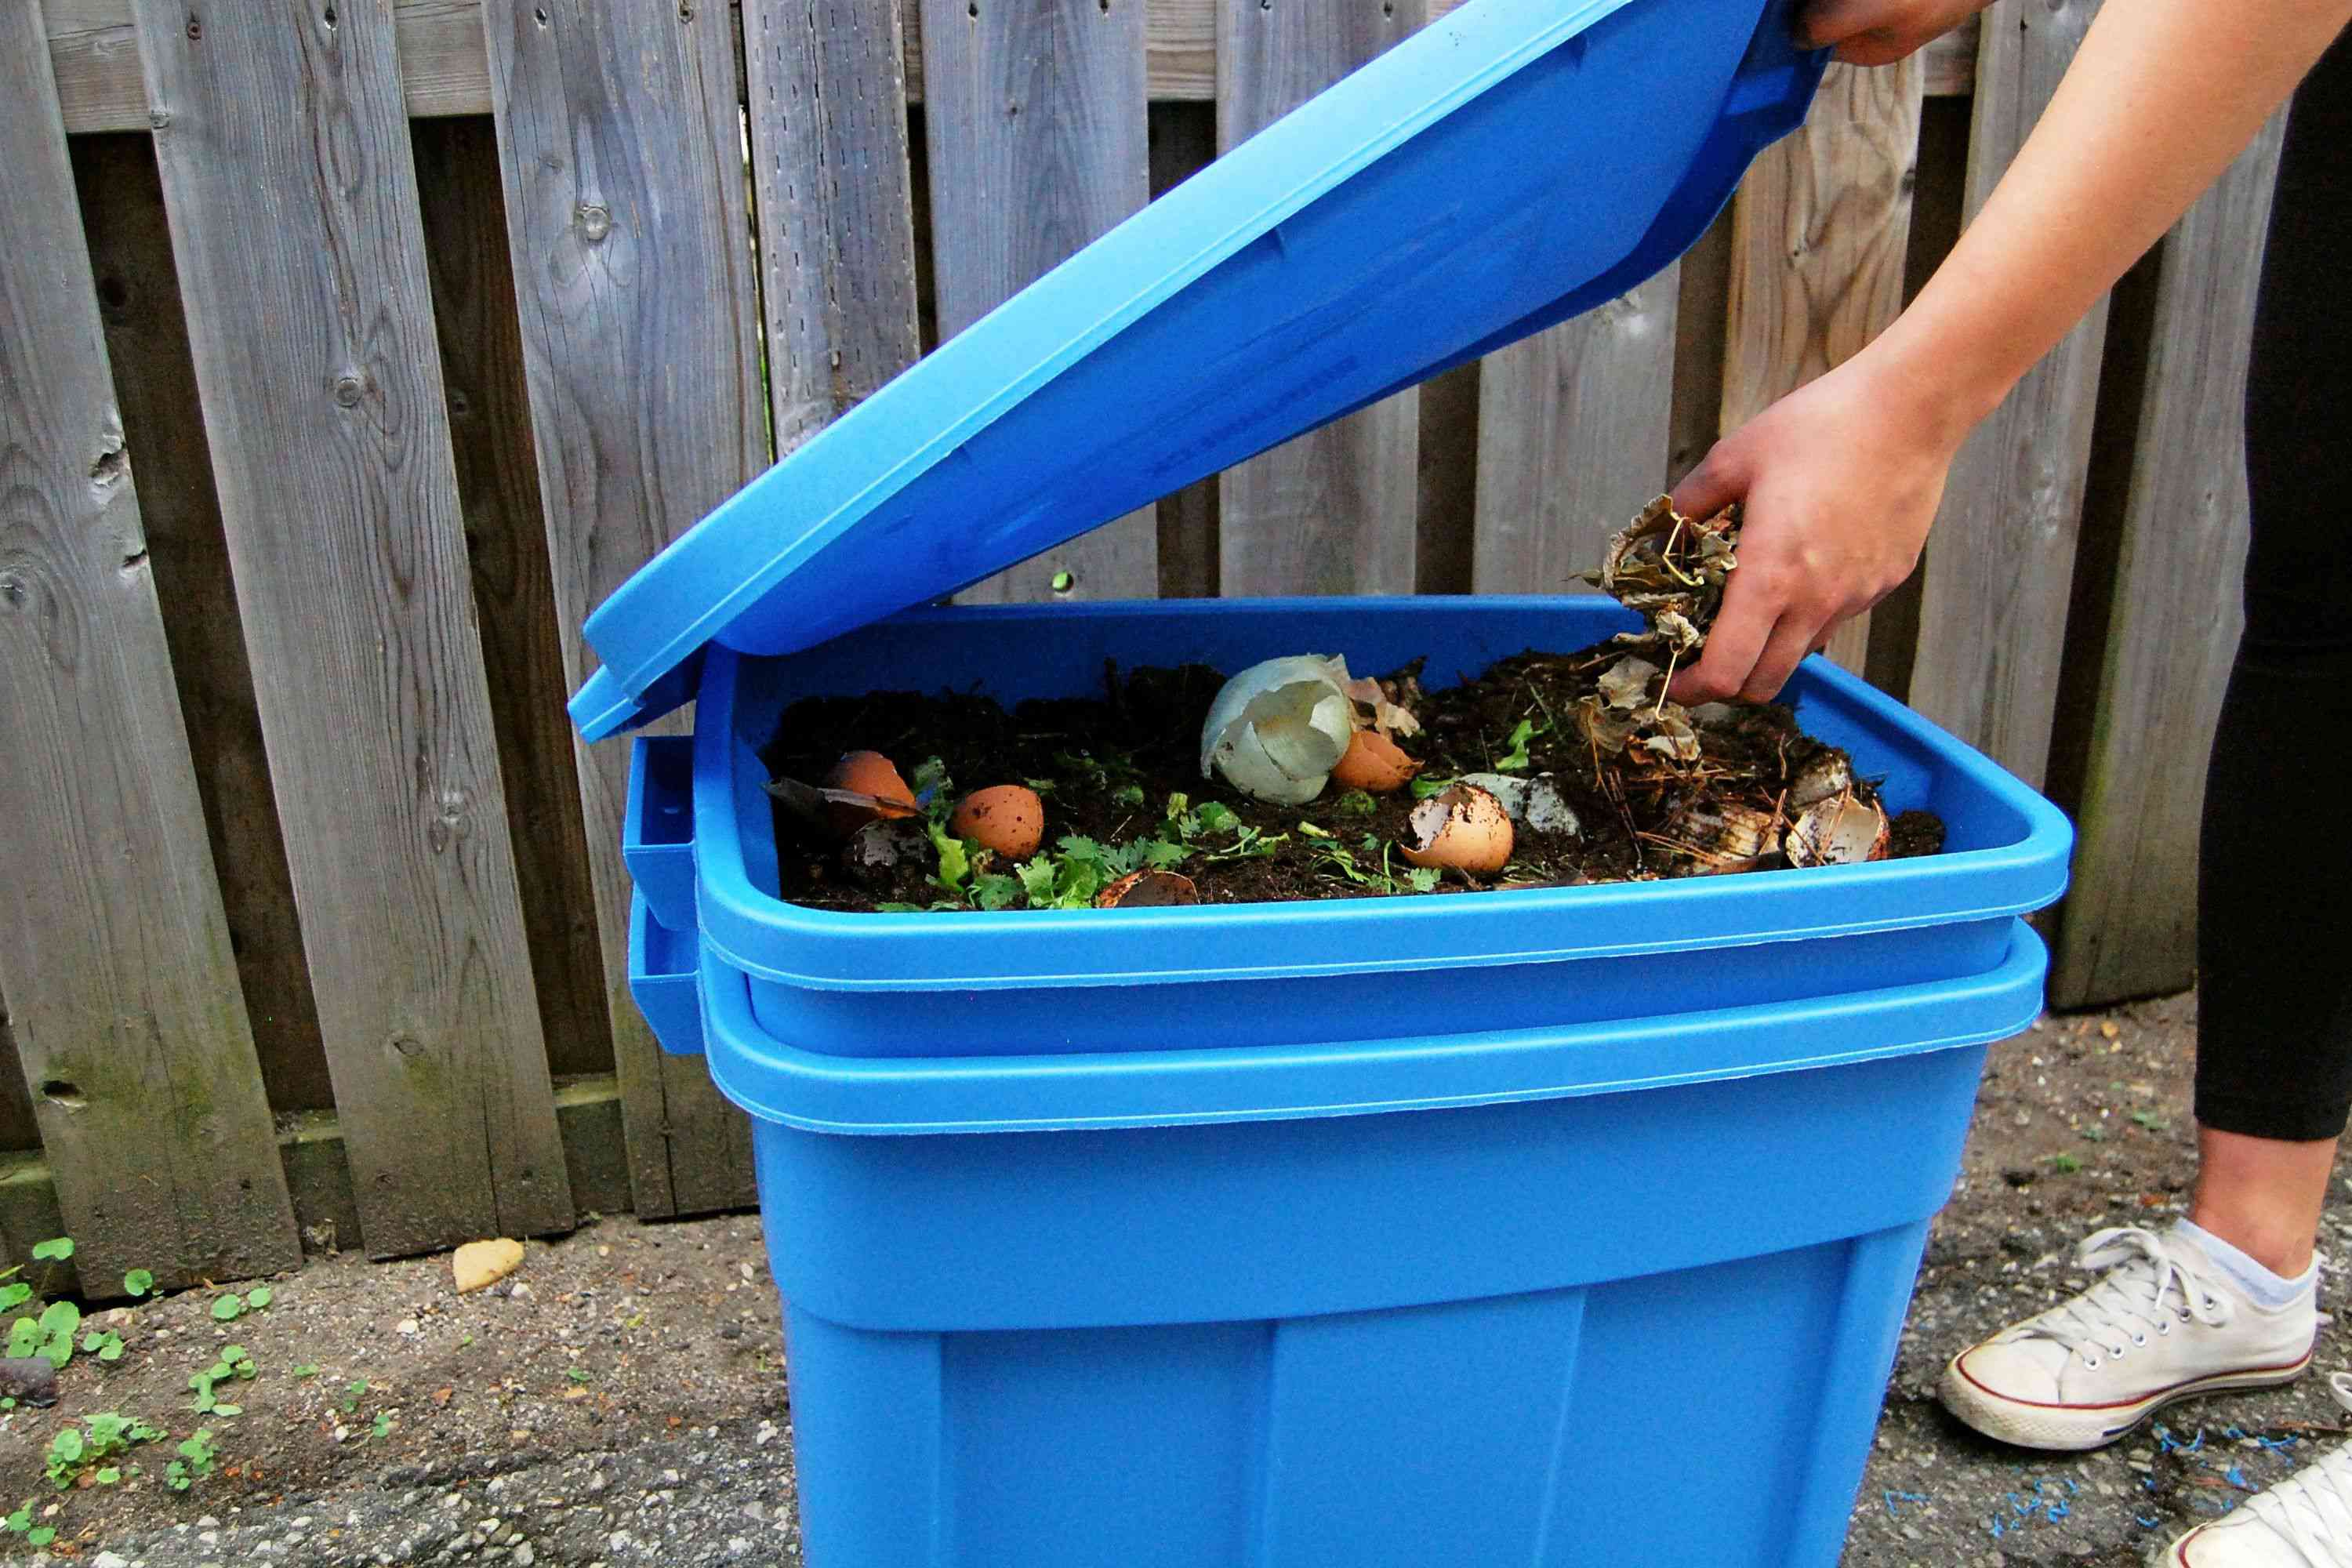 maintaining the compost bin